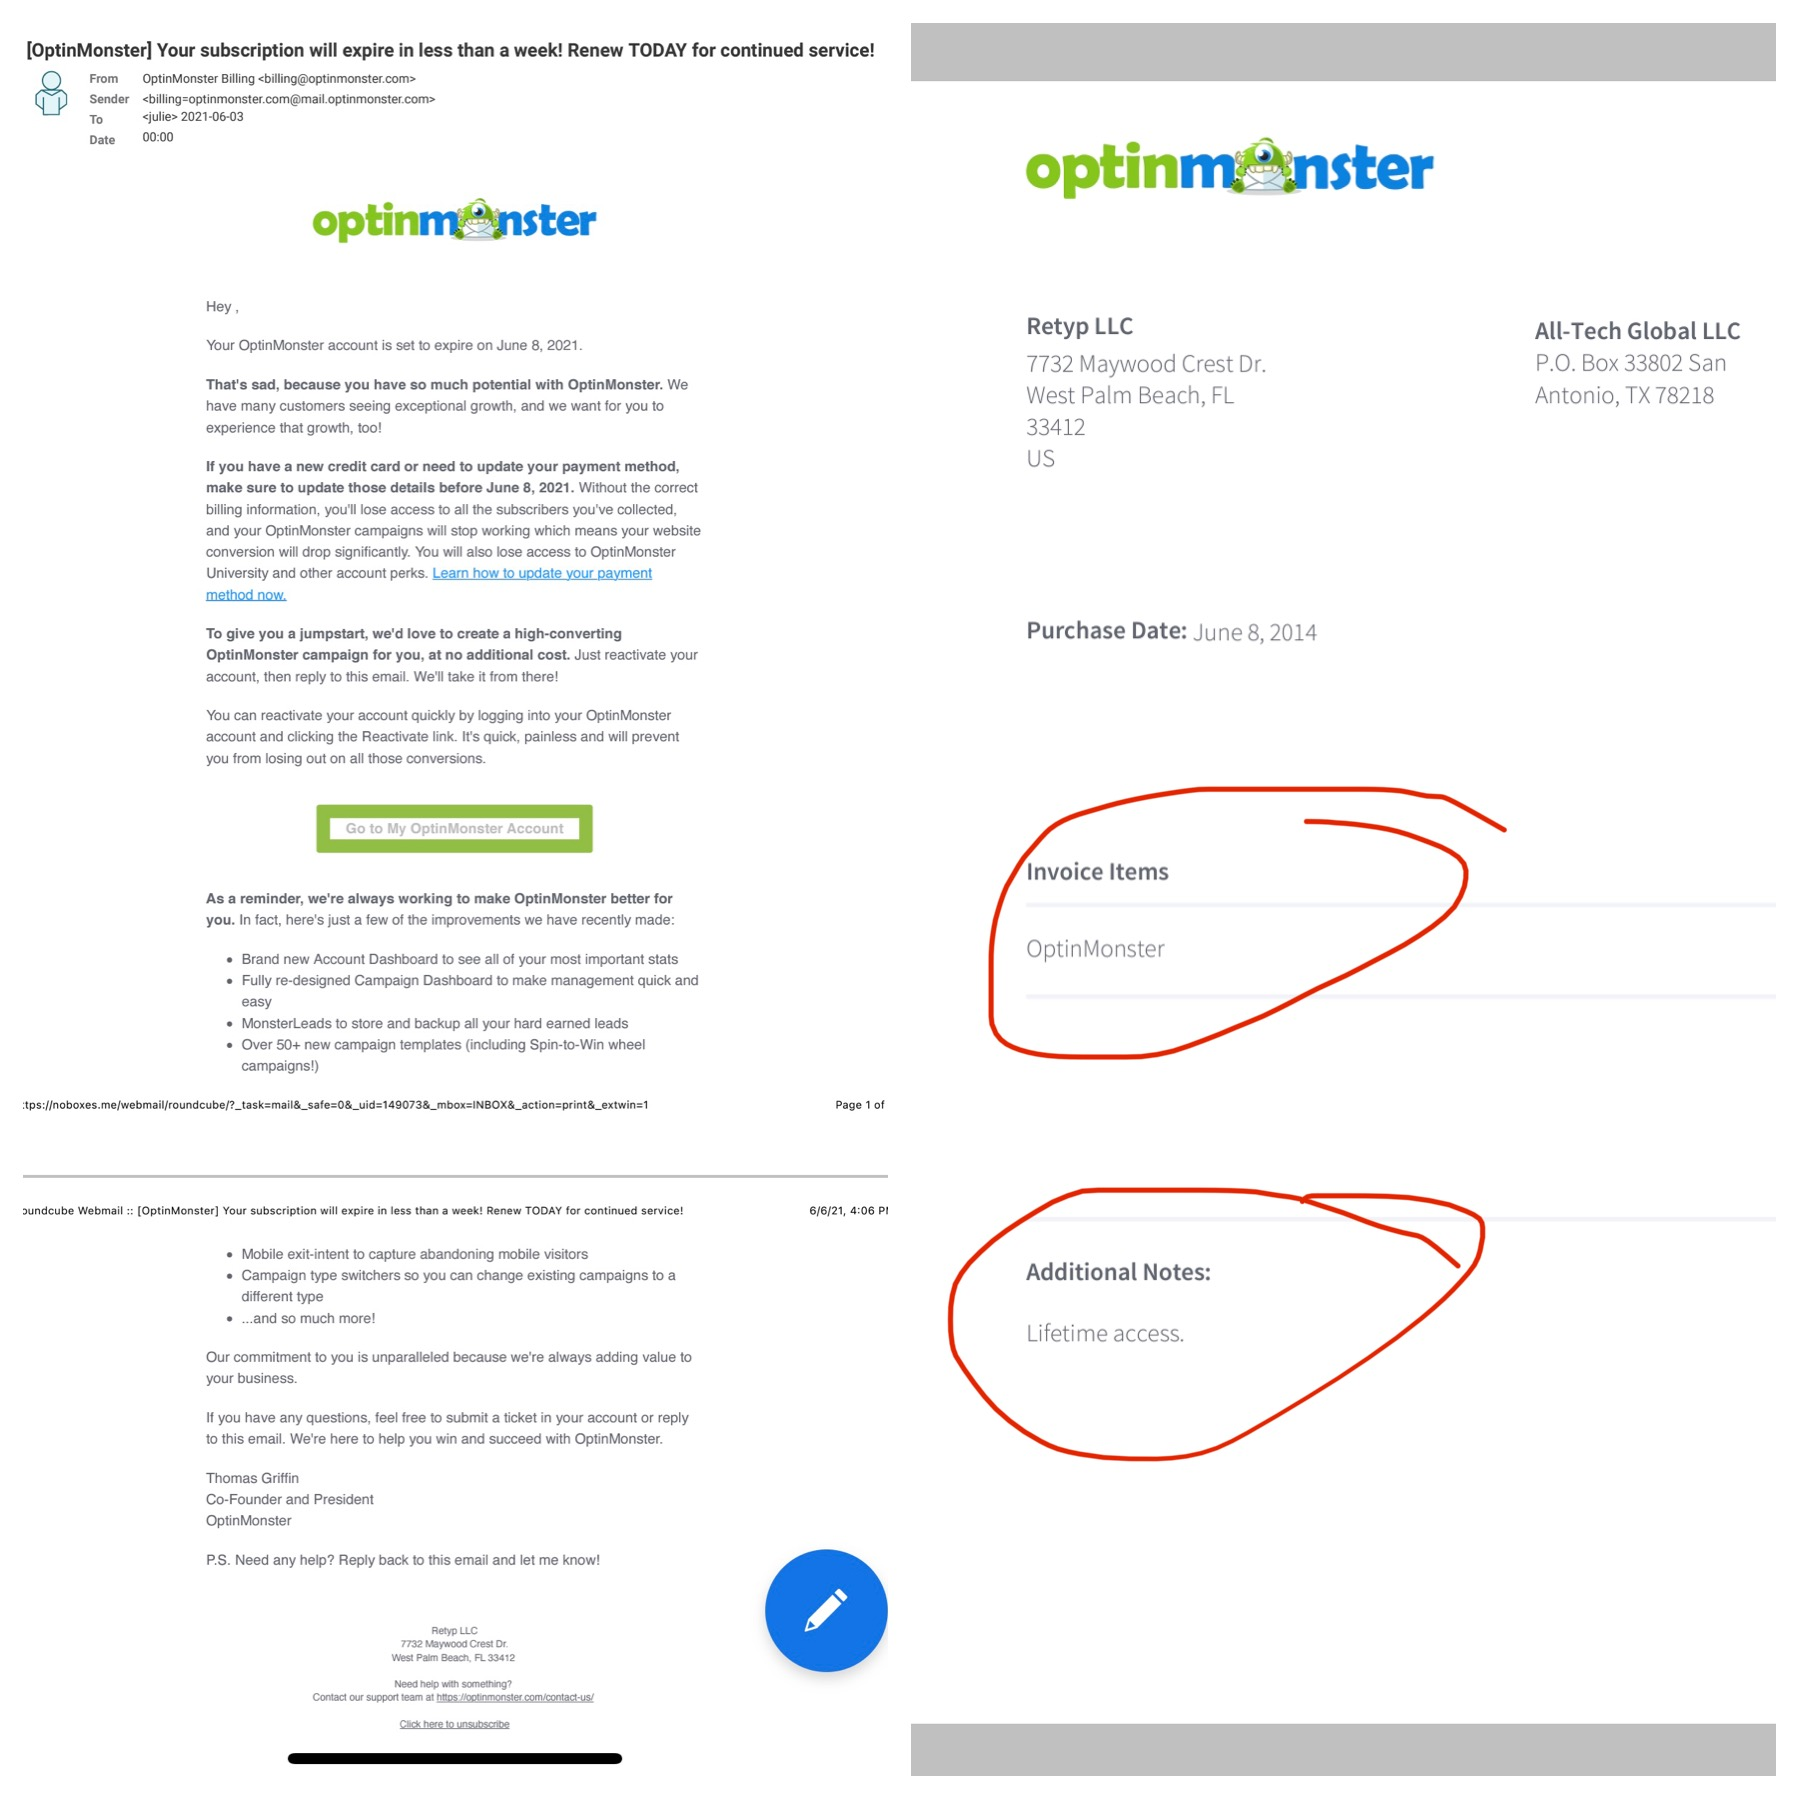 Photo showing an email from Thomas Griffin at OptinMonster attempting to sell me a subscription to something that I've already paid for a lifetime subscription to.  The right part of the photo shows my receipt for a lifetime subscription paid in full.